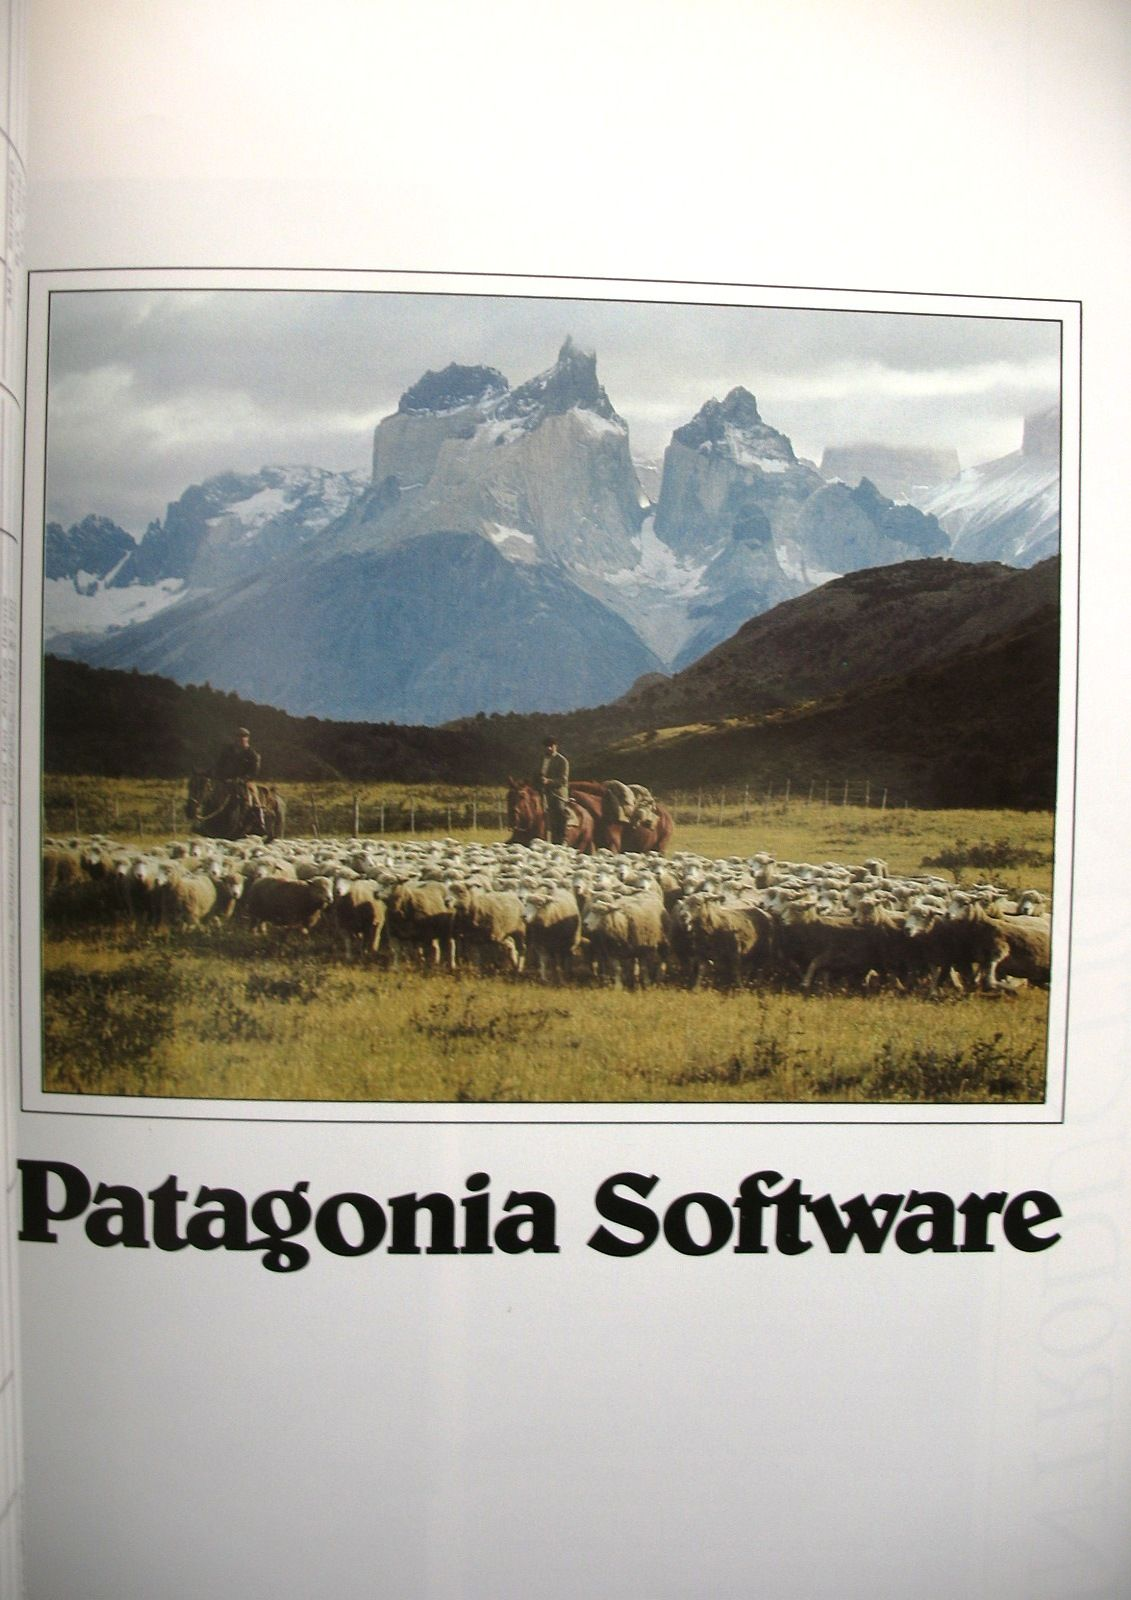 1981 Patagonia Software cover.JPG